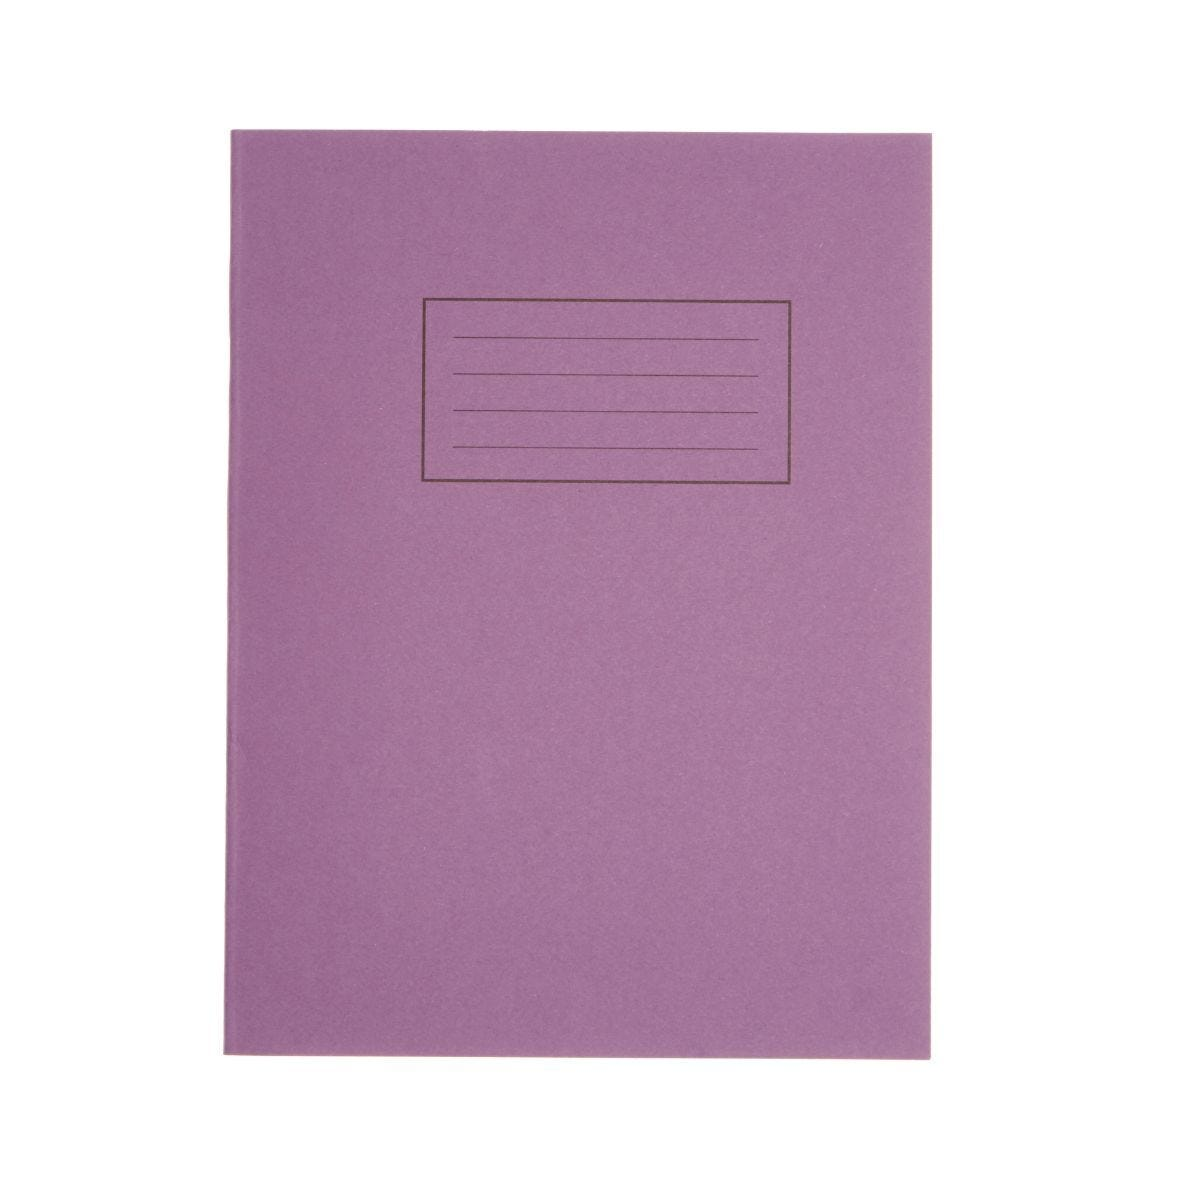 Silvine Exercise Book 9 Inch x 7 Inch 80 Page Ruled 75gsm Purple